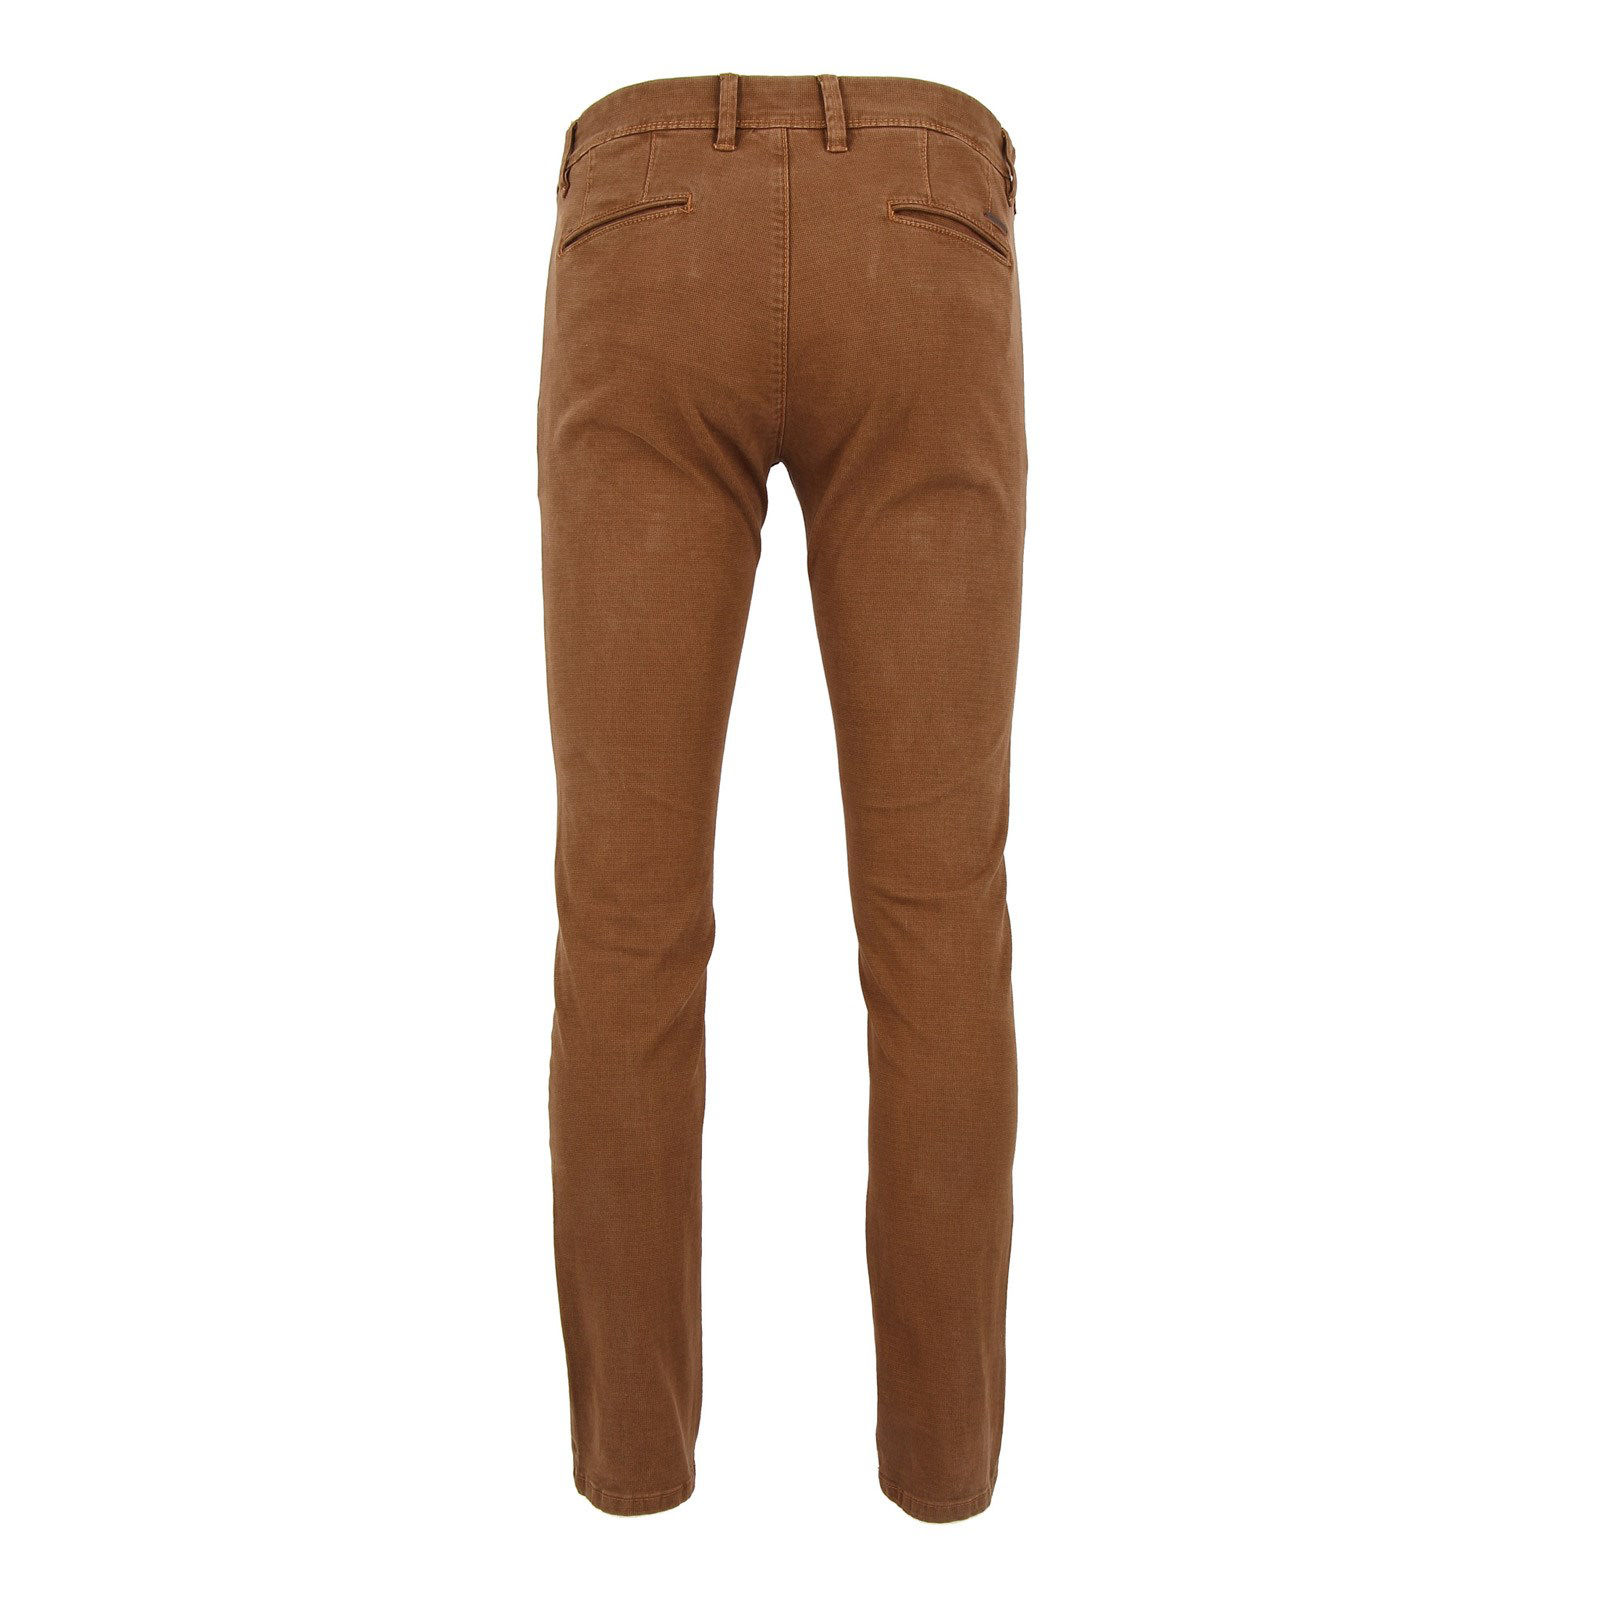 Immagine di YELLOW DOG - PANTALONE TASCA AMERICANA TINTO IN CAPO